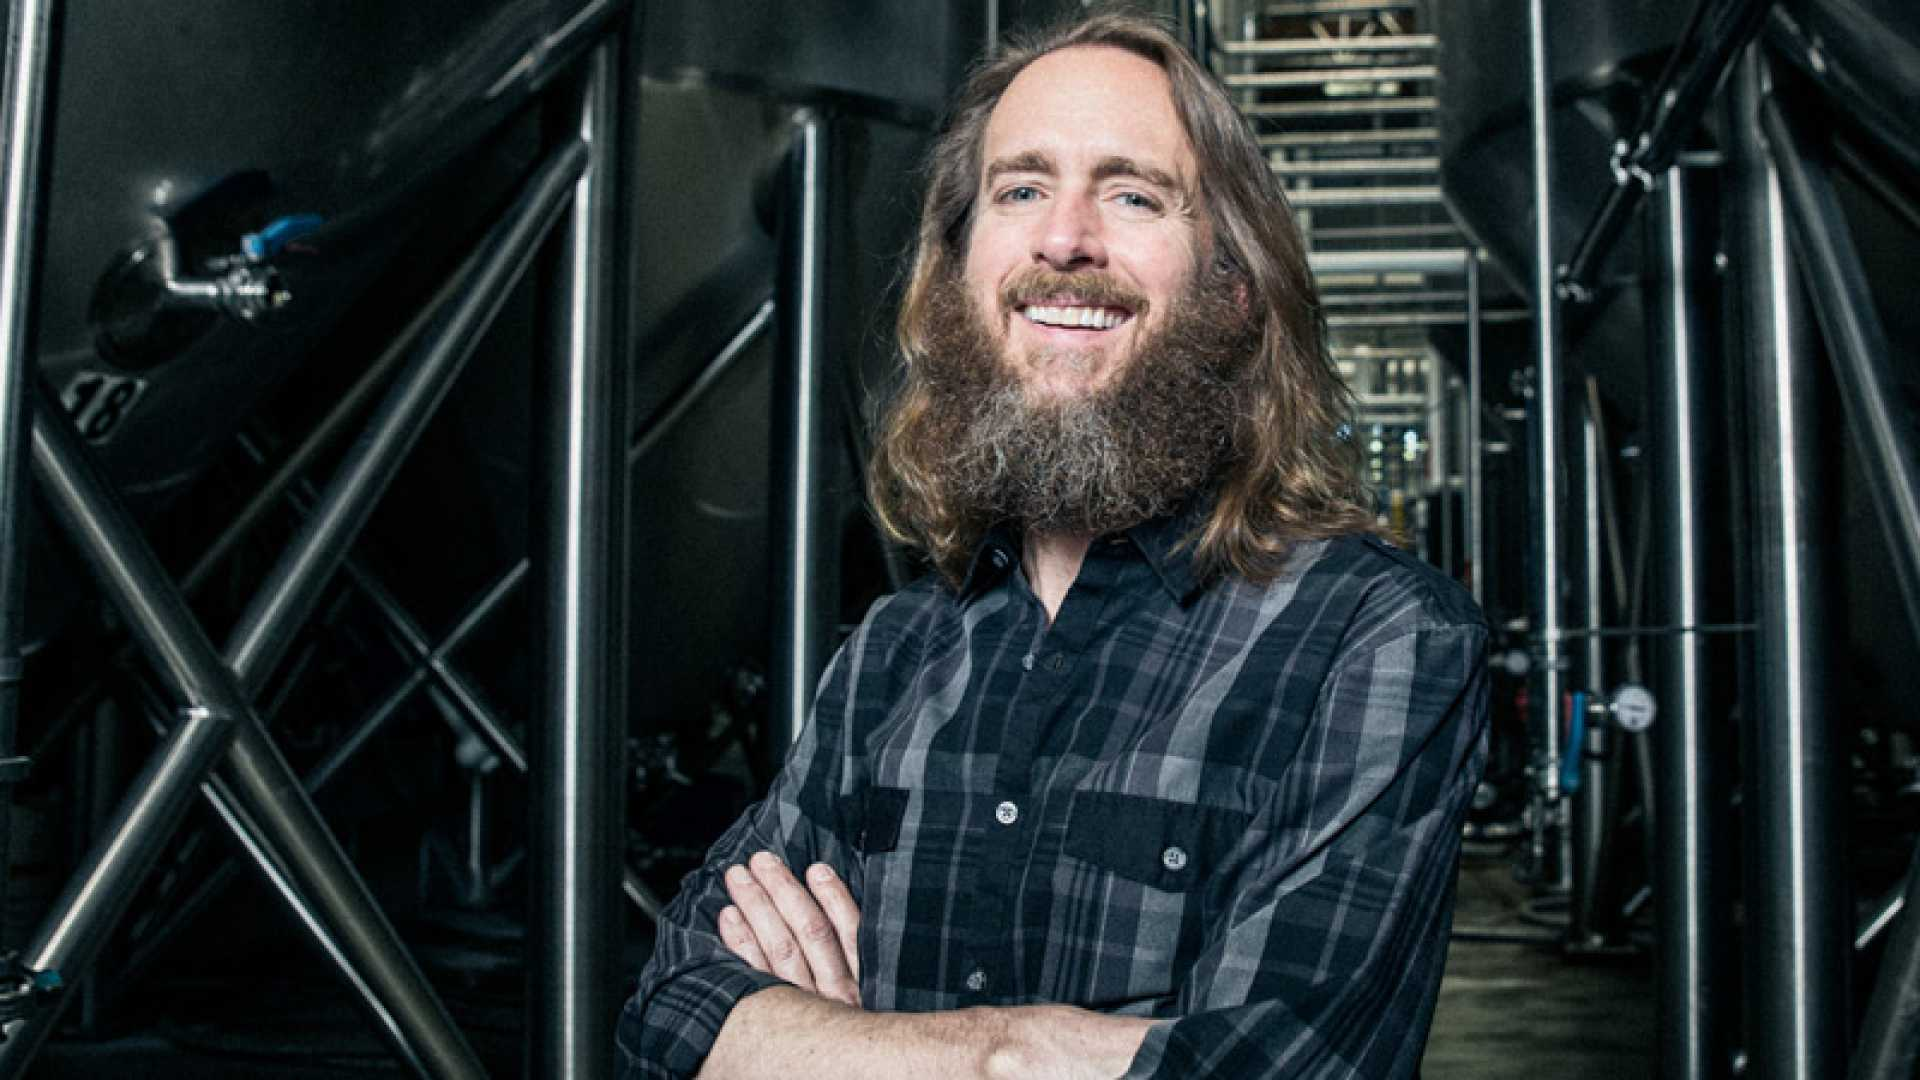 Greg Koch, CEO of Stone Brewing Co.